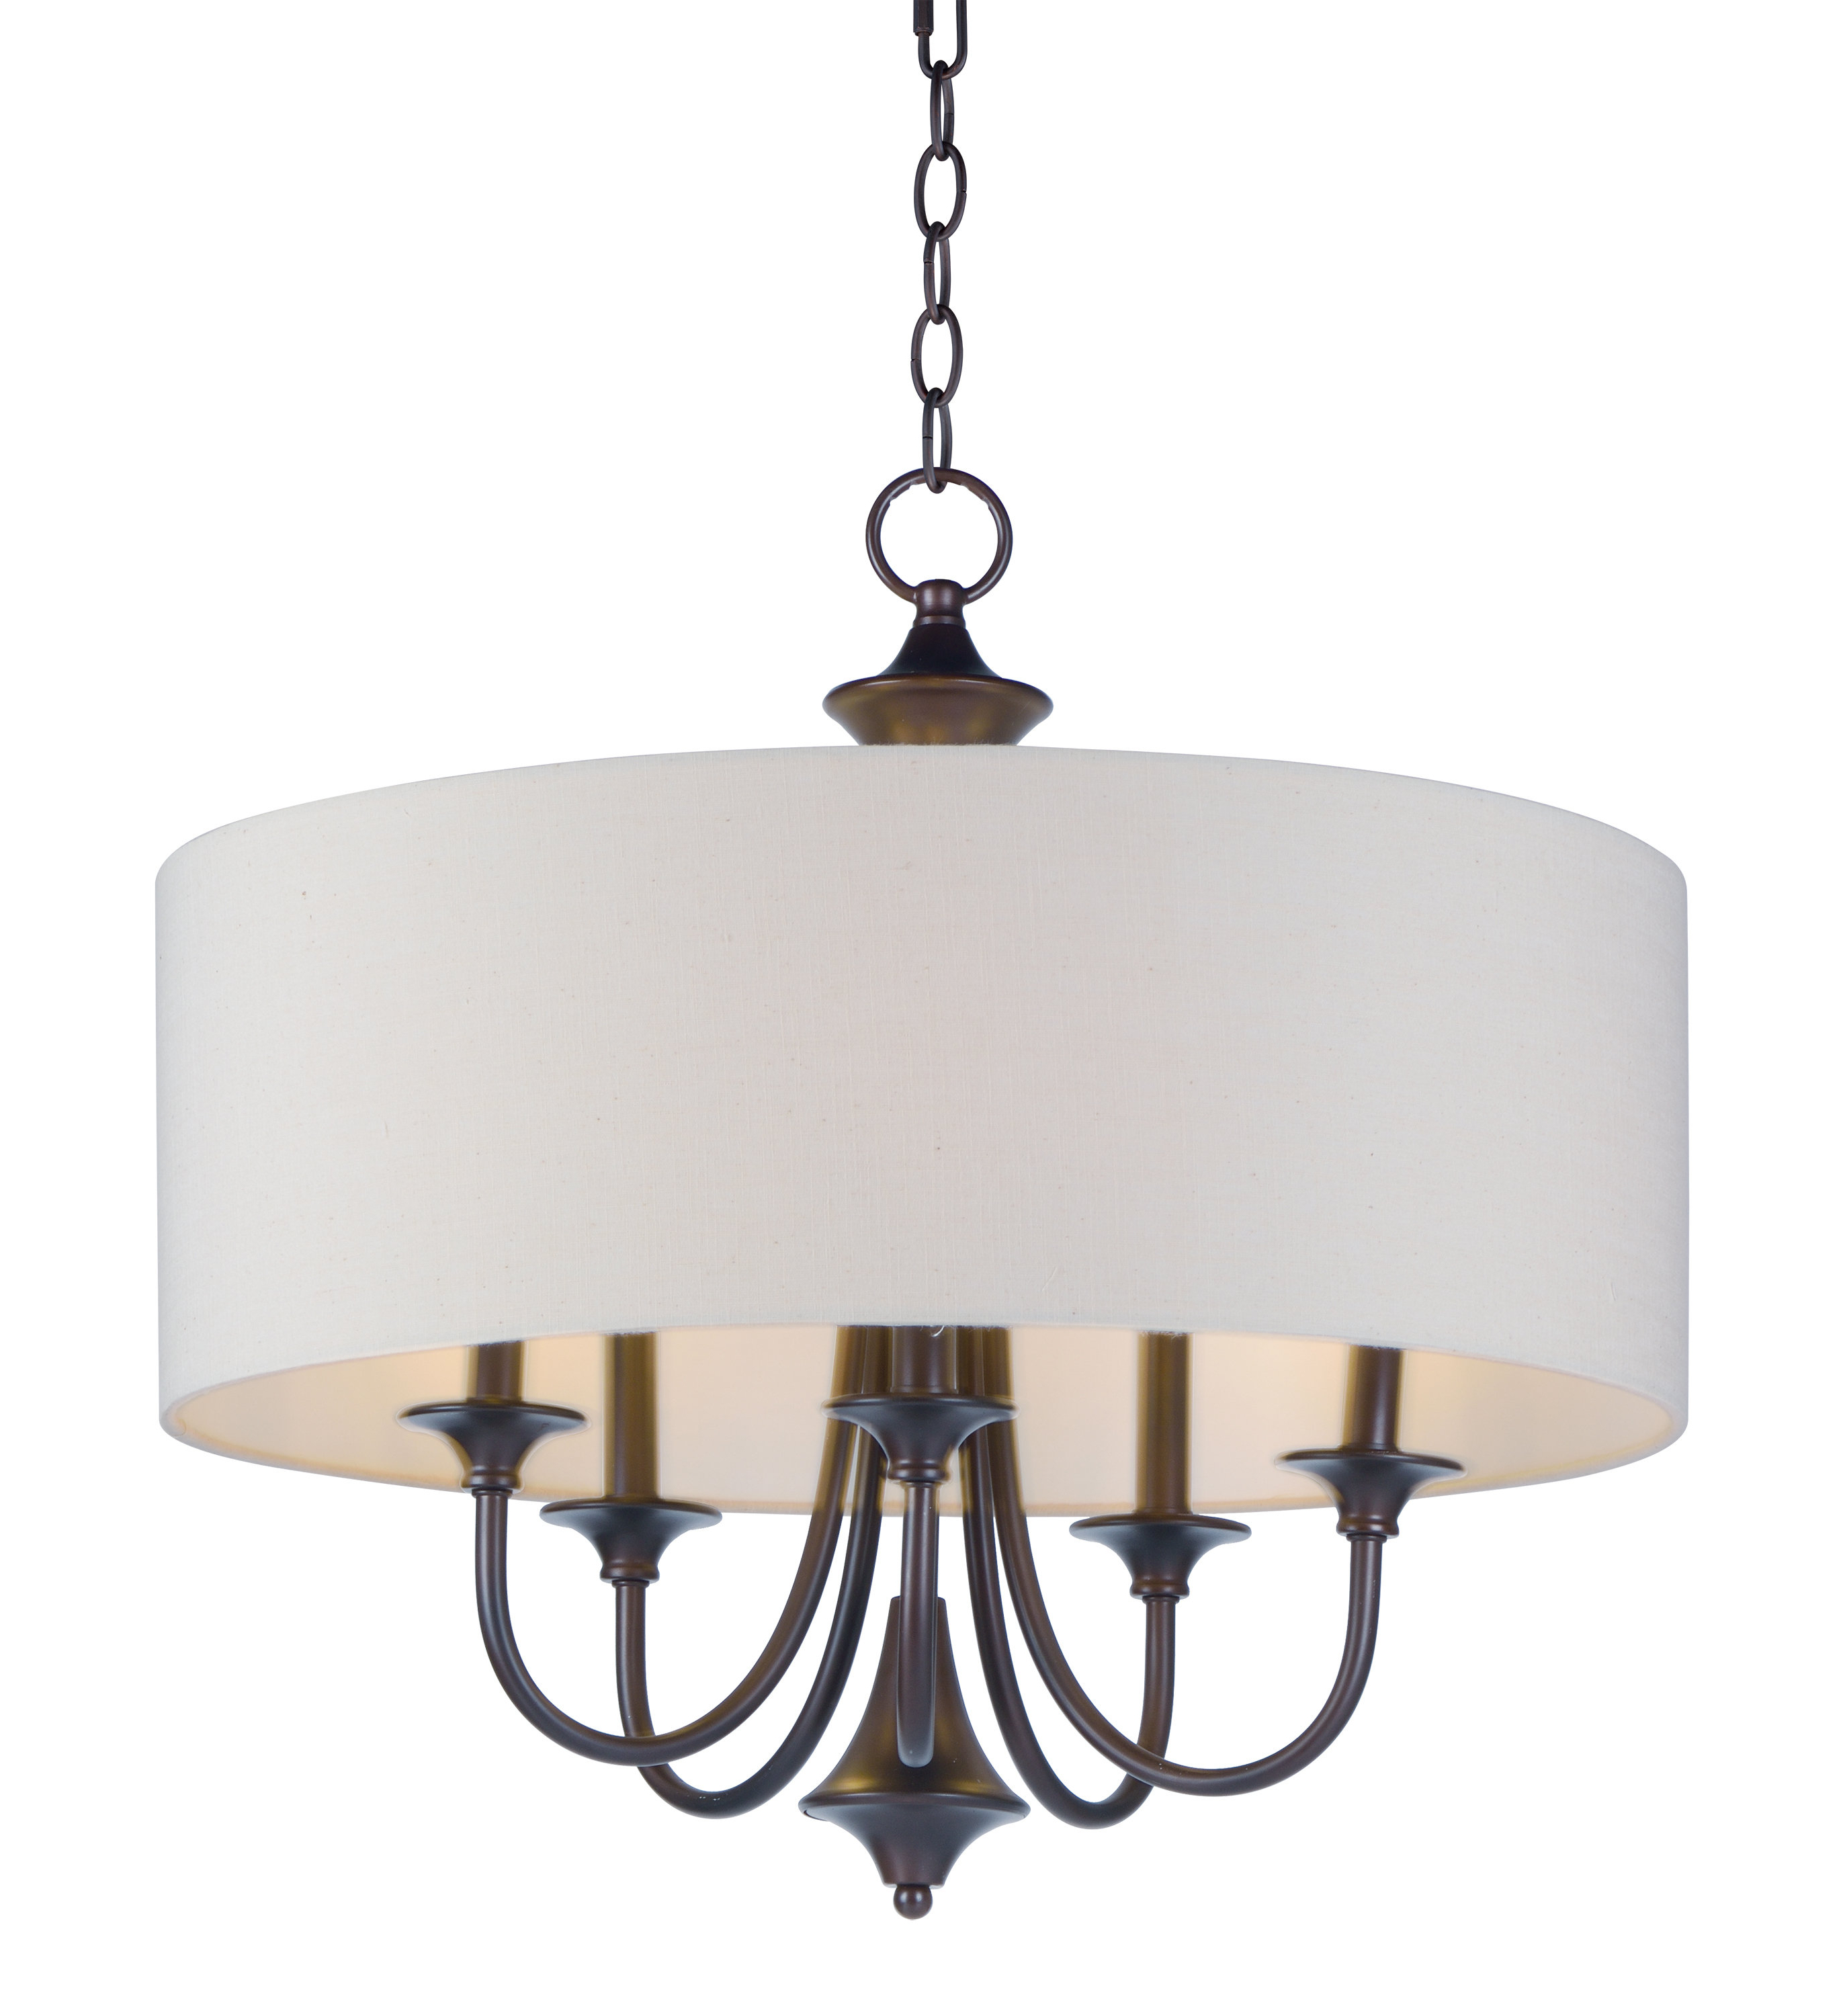 Wadlington 5 Light Drum Chandelier Regarding Well Liked Wadlington 6 Light Single Cylinder Pendants (Gallery 6 of 20)